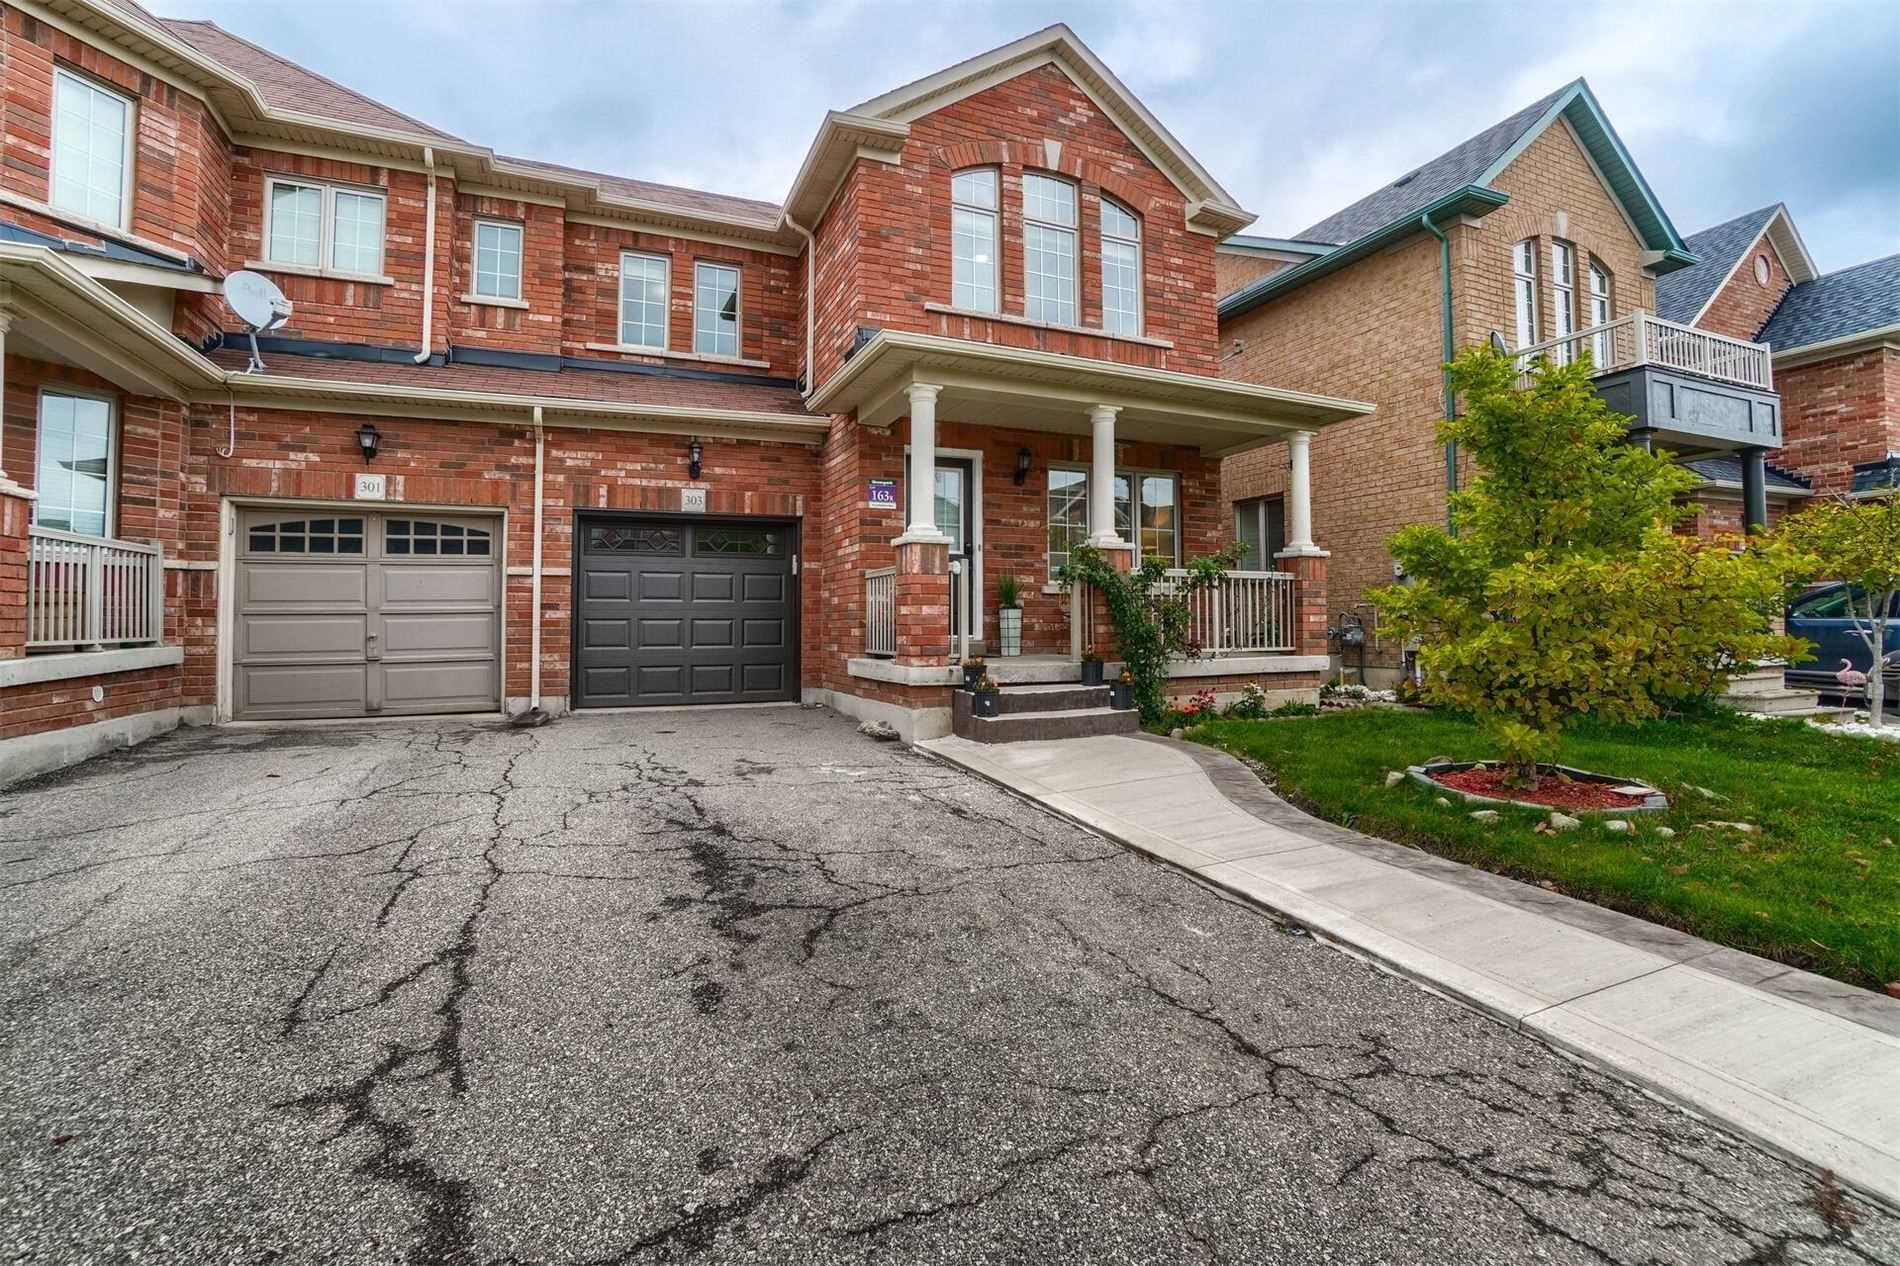 303 Giddings Cres, Milton, ON L9T7A9 - MLS#: W5410532